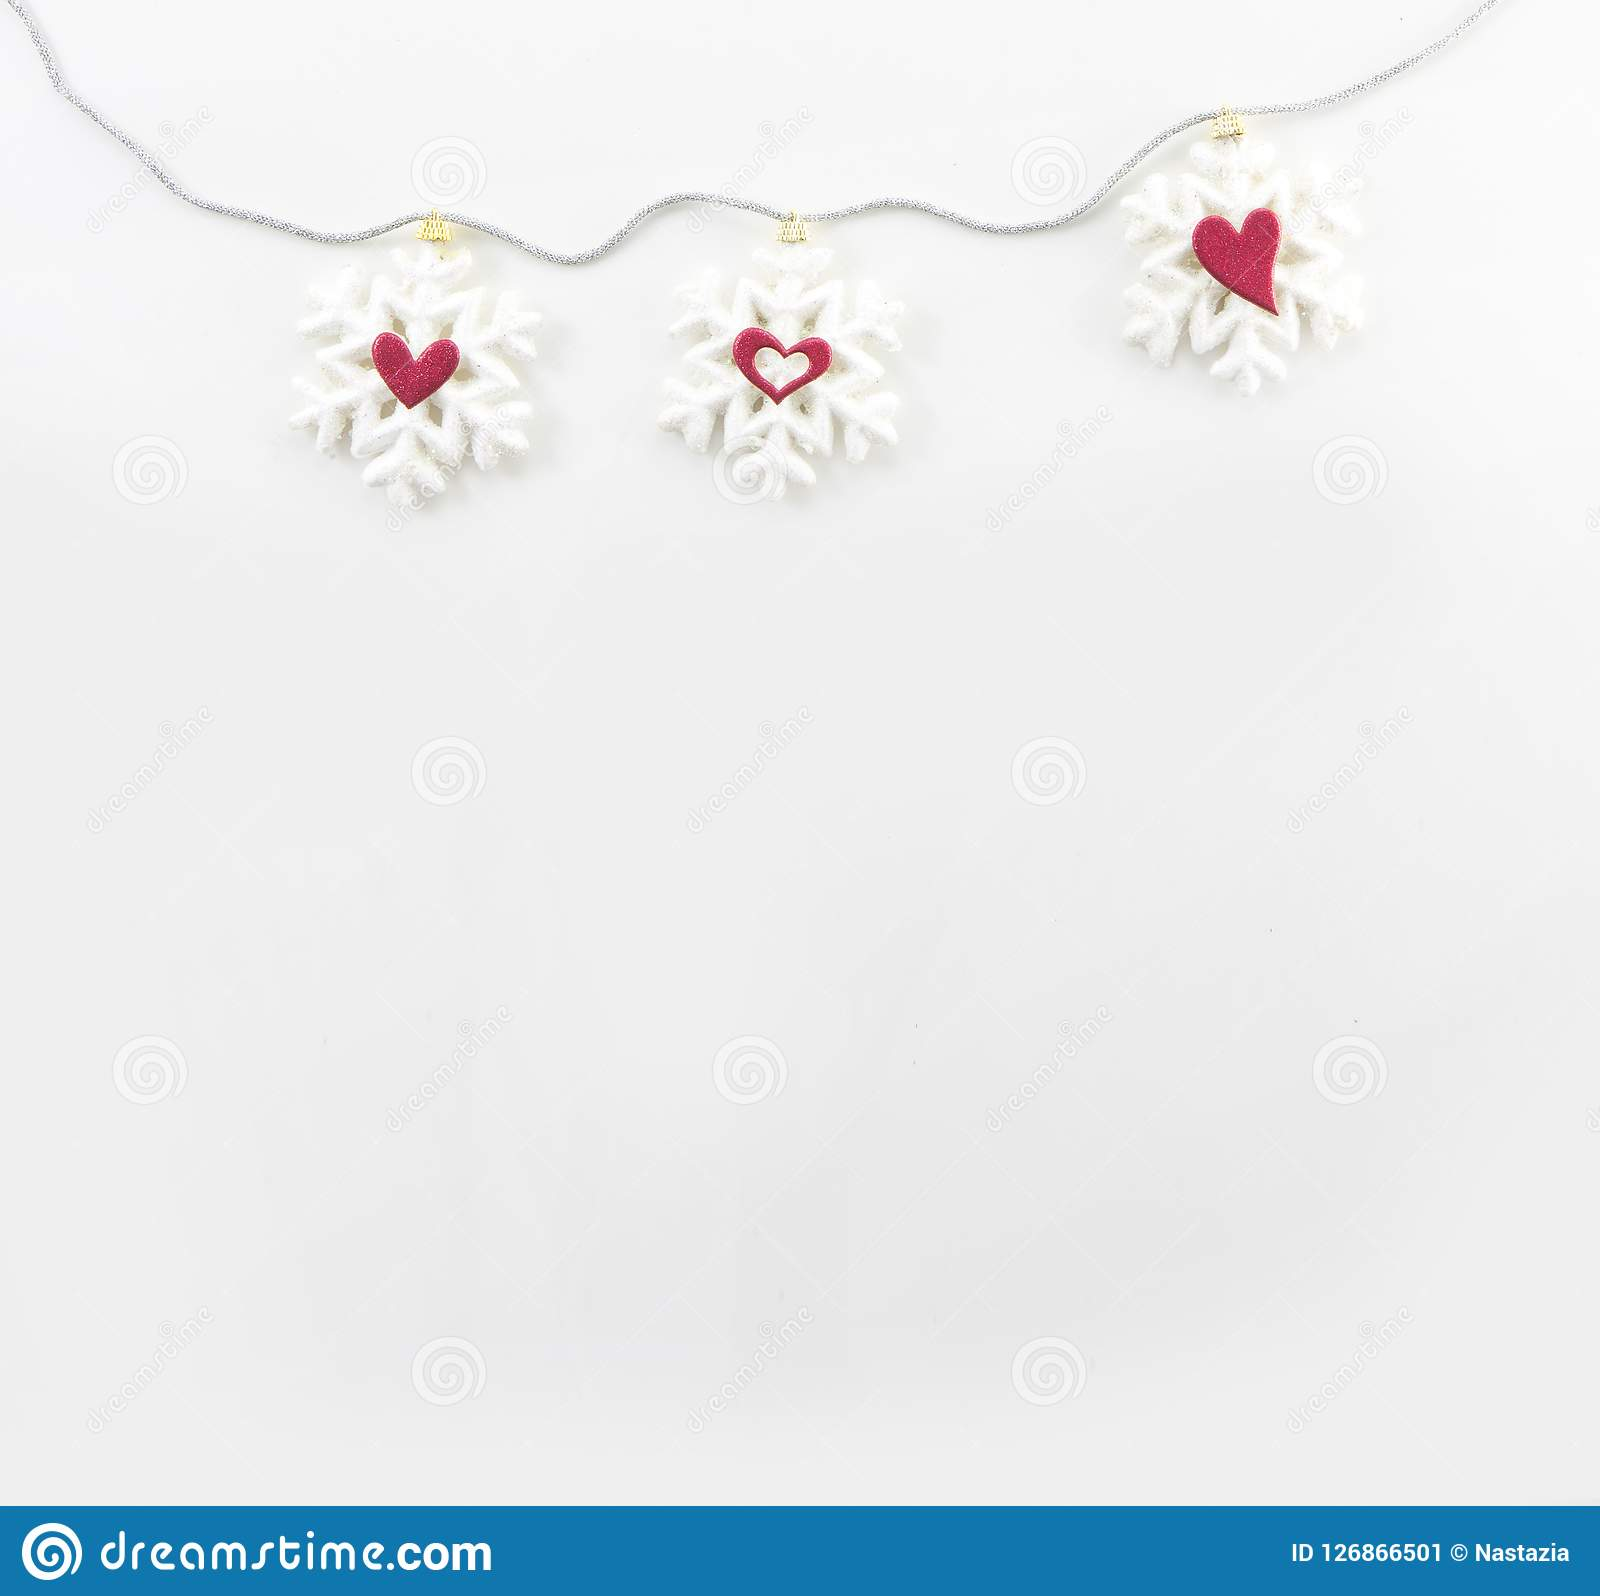 SNOW FLAKES & HEARTS, CHRISTMAS BACKGROUND